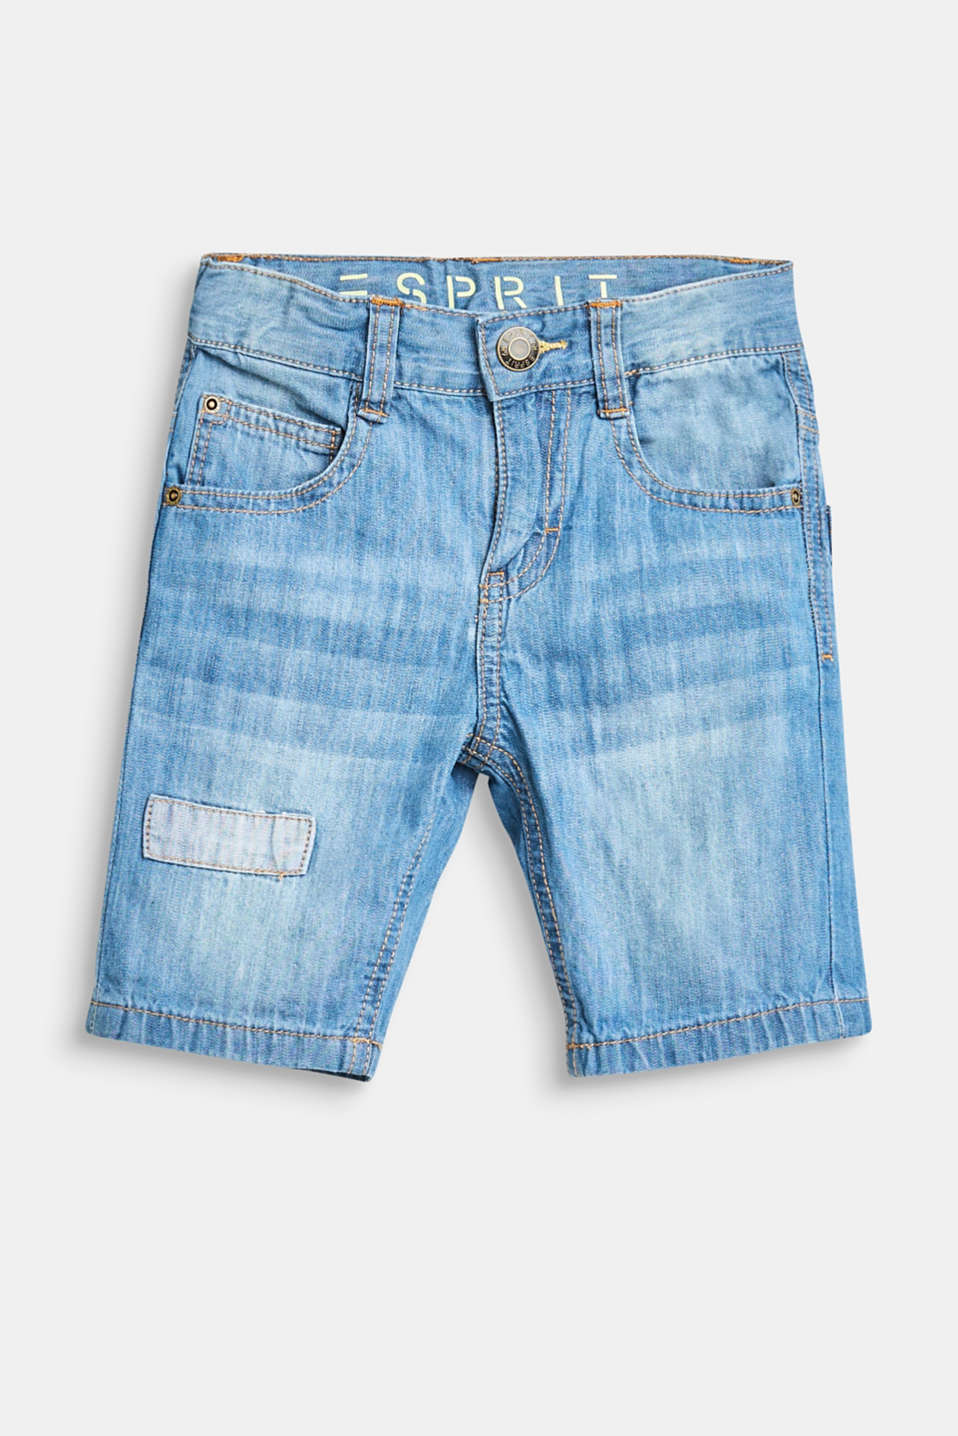 Esprit - Denim shorts with an adjustable waistband, 100% cotton